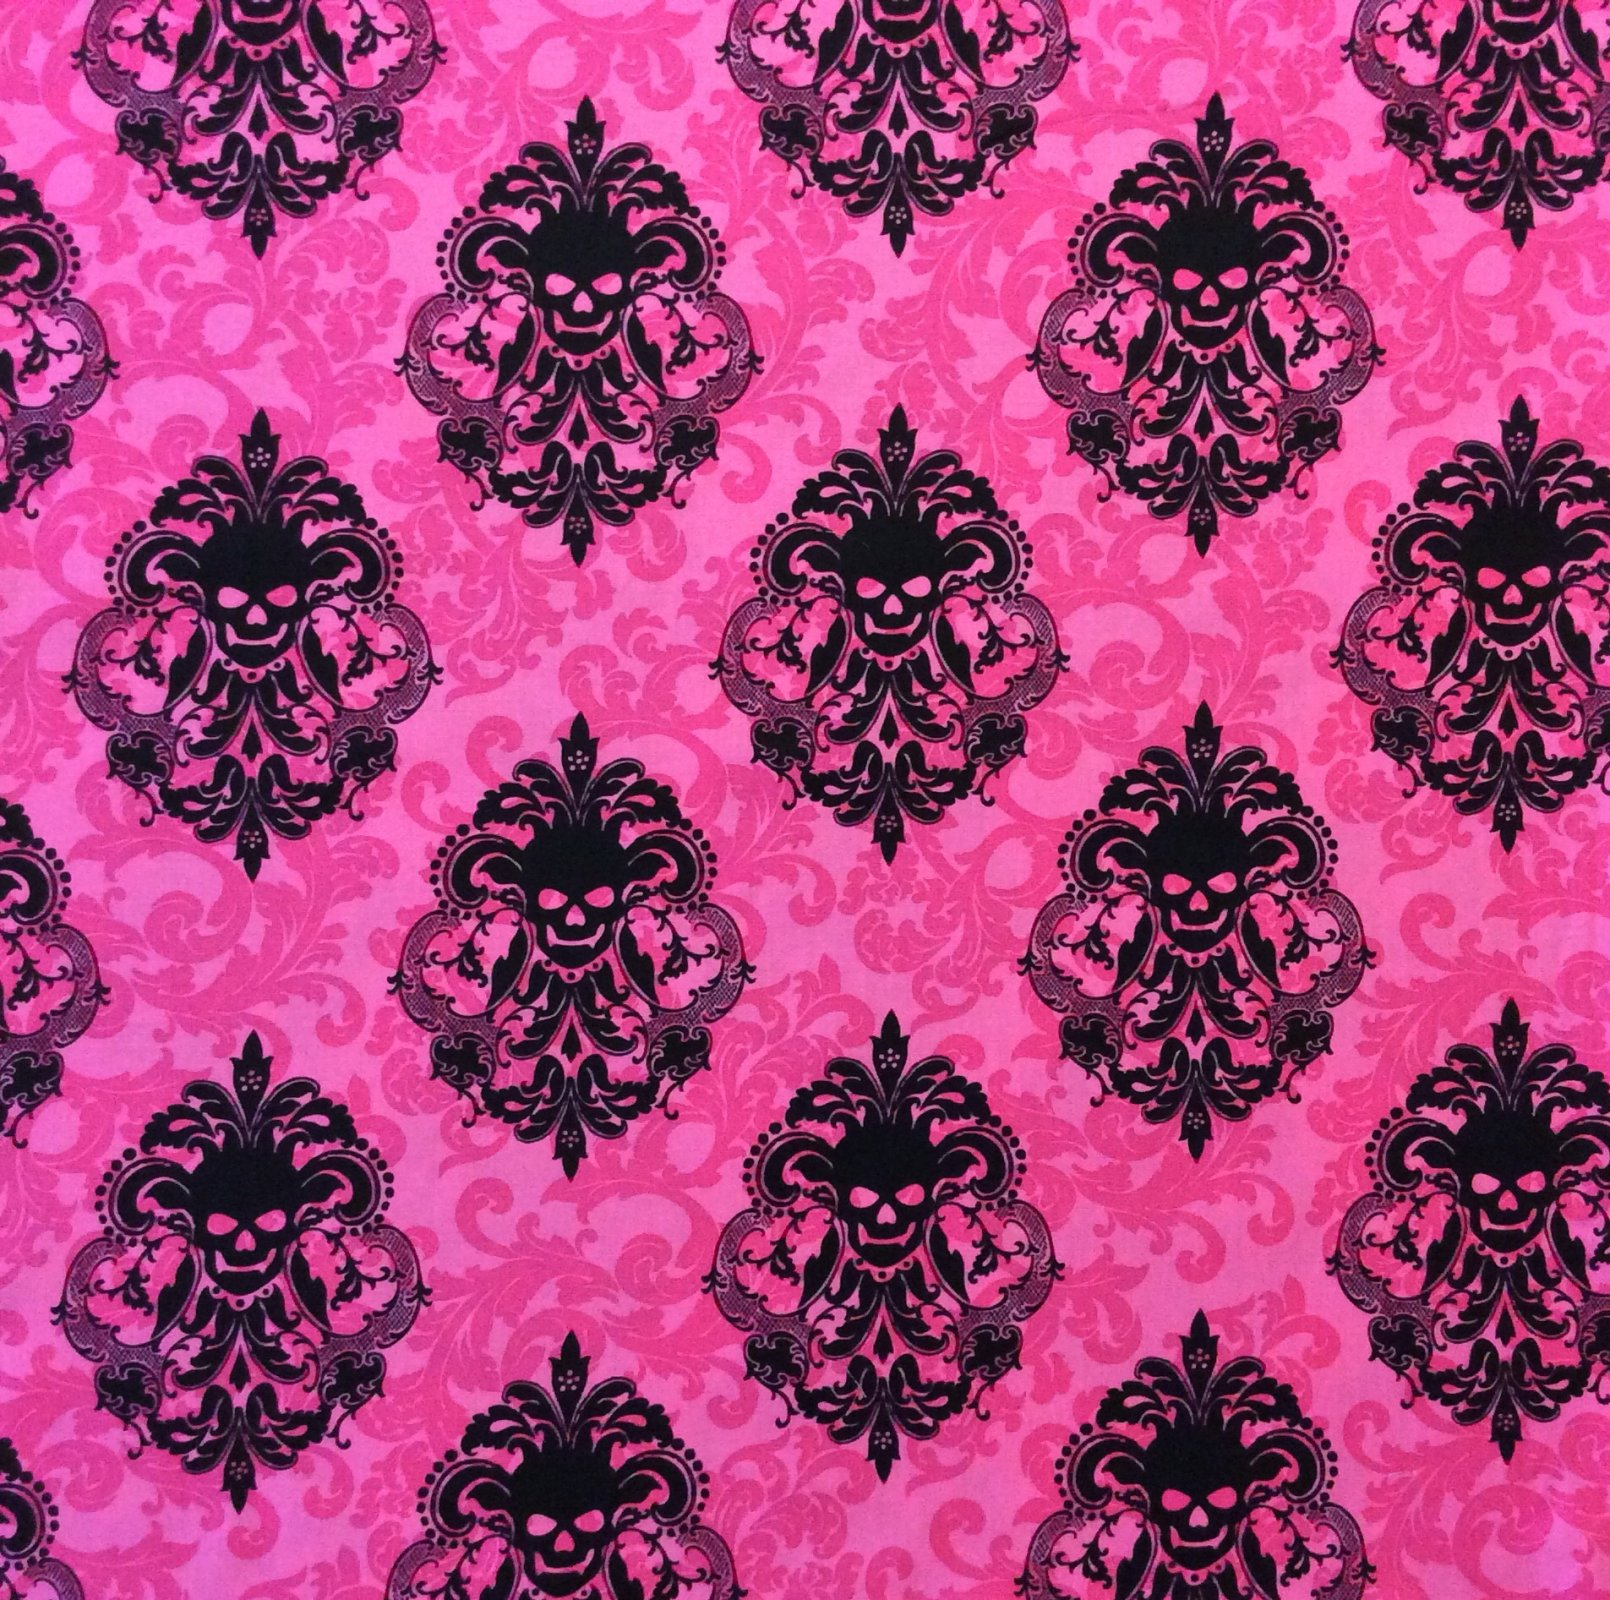 Skull Damask Spooky Halloween Gothic Manor Scary Cotton Quilting Fabric MM99